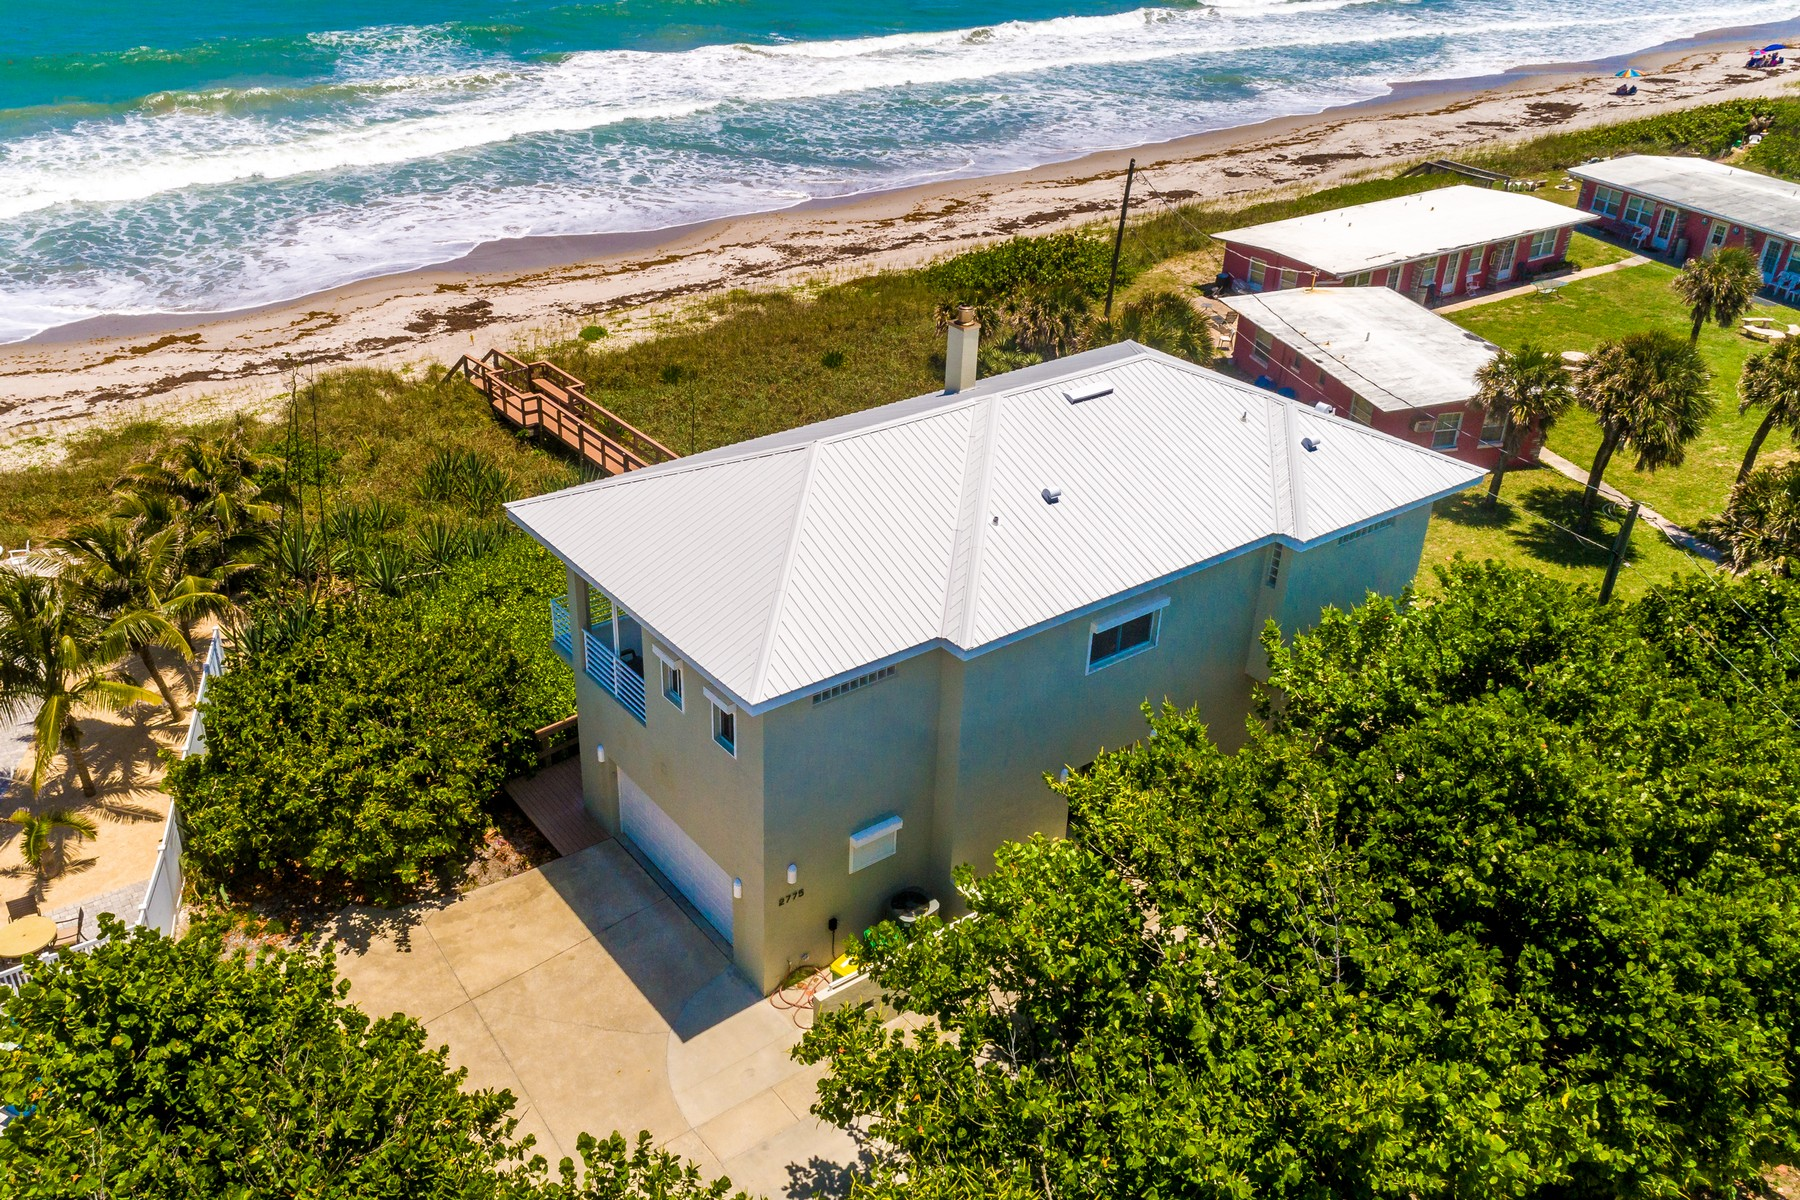 Property для того Продажа на Modern Oceanfront Beauty 2775 S Highway A1A Melbourne Beach, Флорида 32951 Соединенные Штаты